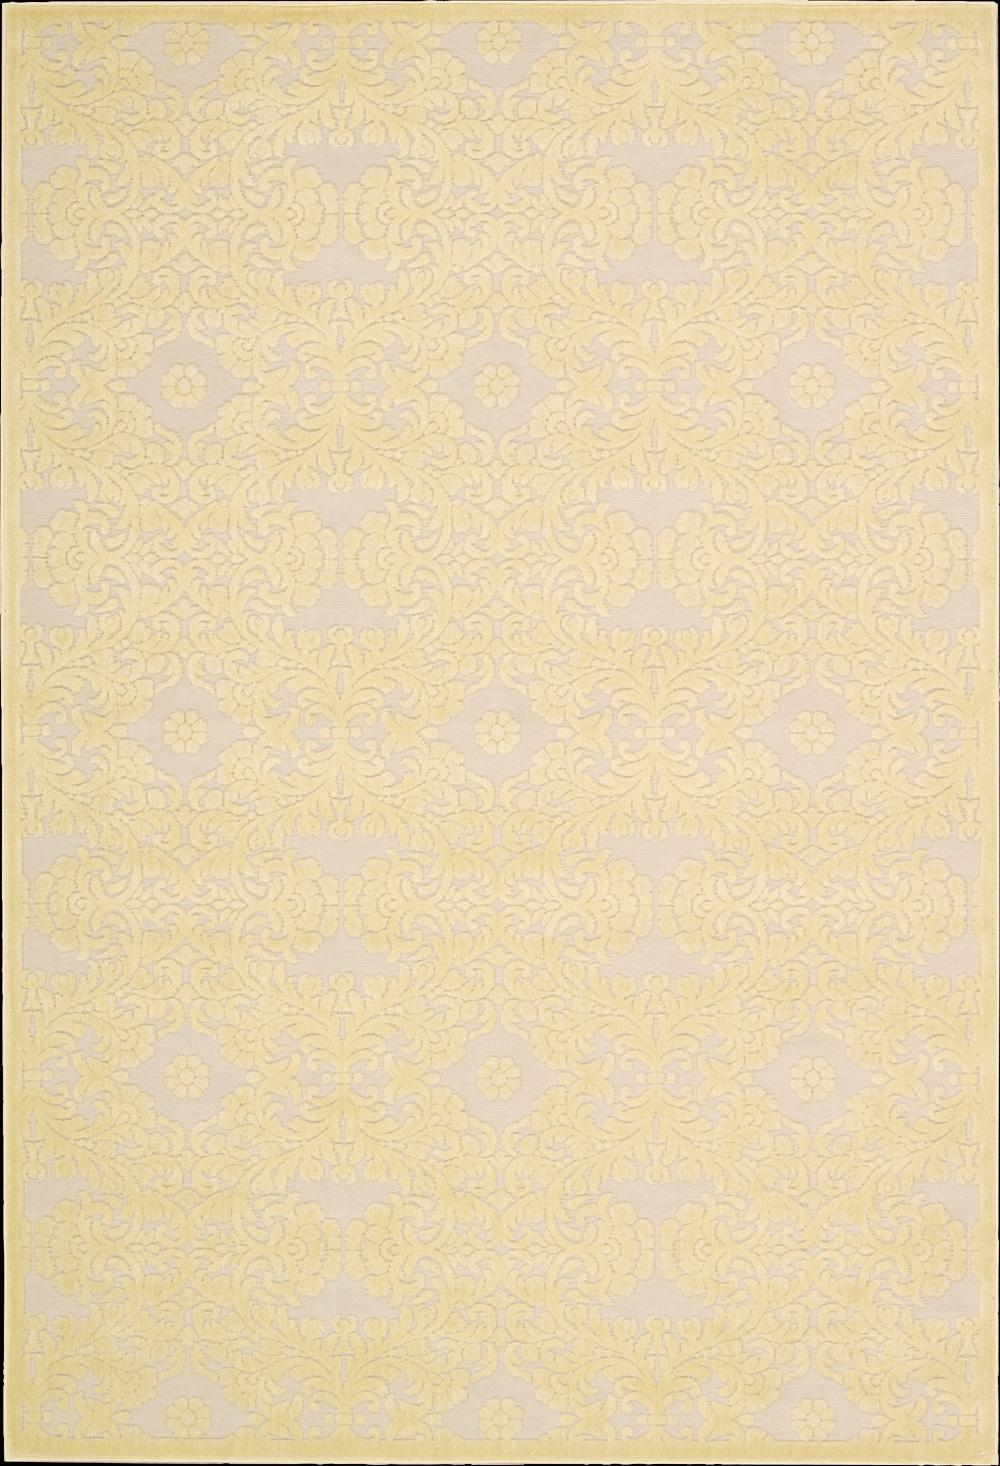 "Nourison Graphic Illusions Area Rug 2'3"" x 3'9"" - Item Number: 13140"